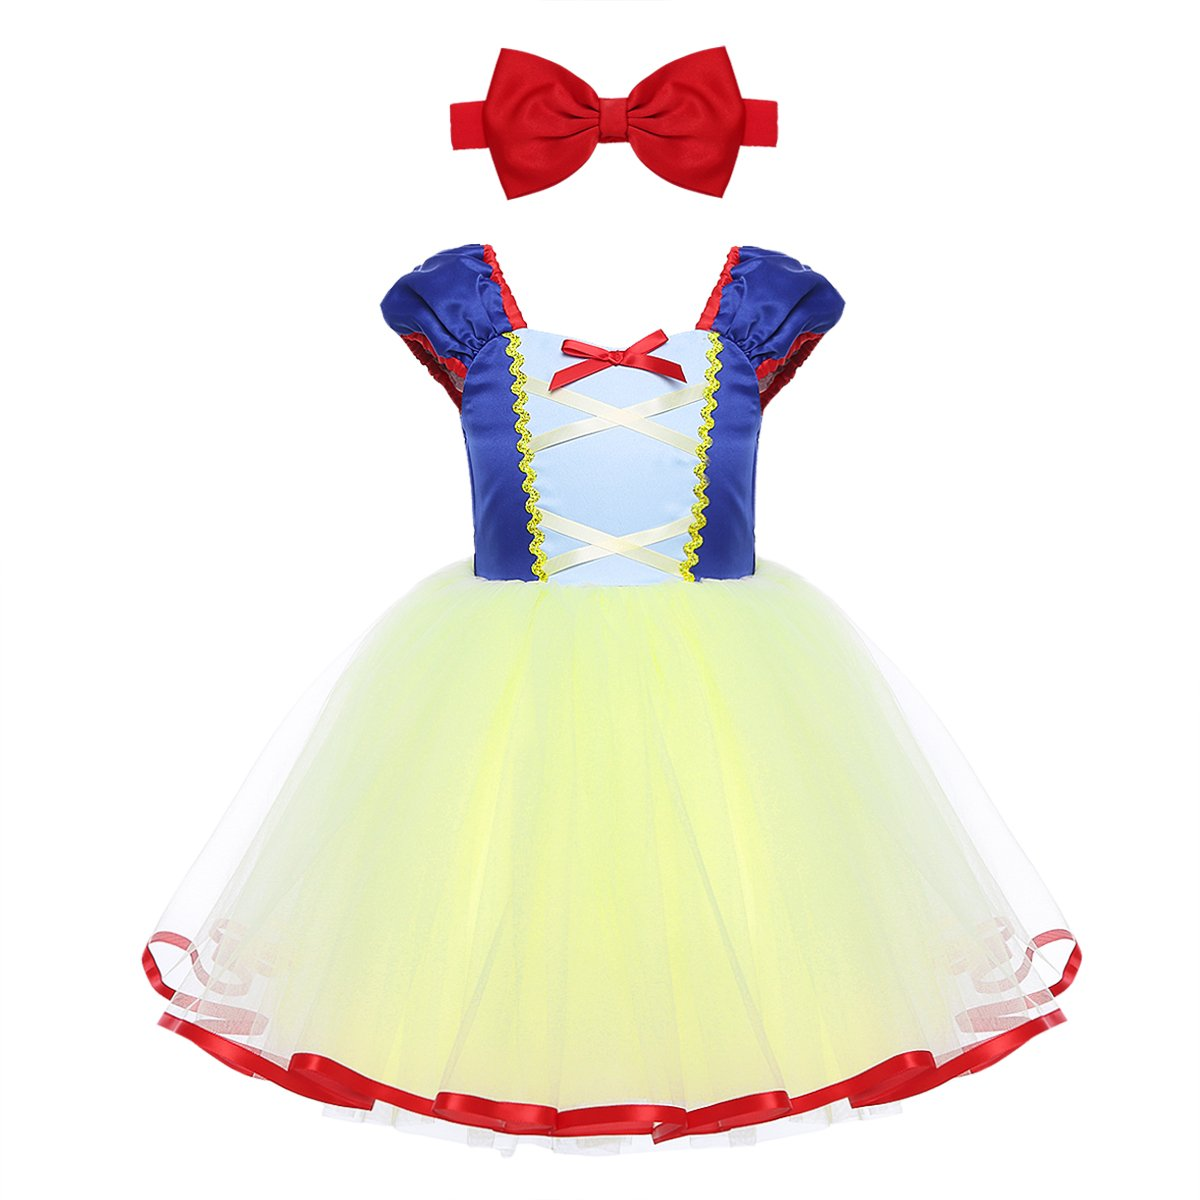 ACSUSS Infant Baby Girls Deluxe Fairy Tale Cartoon Princess Cosplay Dress Halloween Costumes Blue&Yellow 2-3